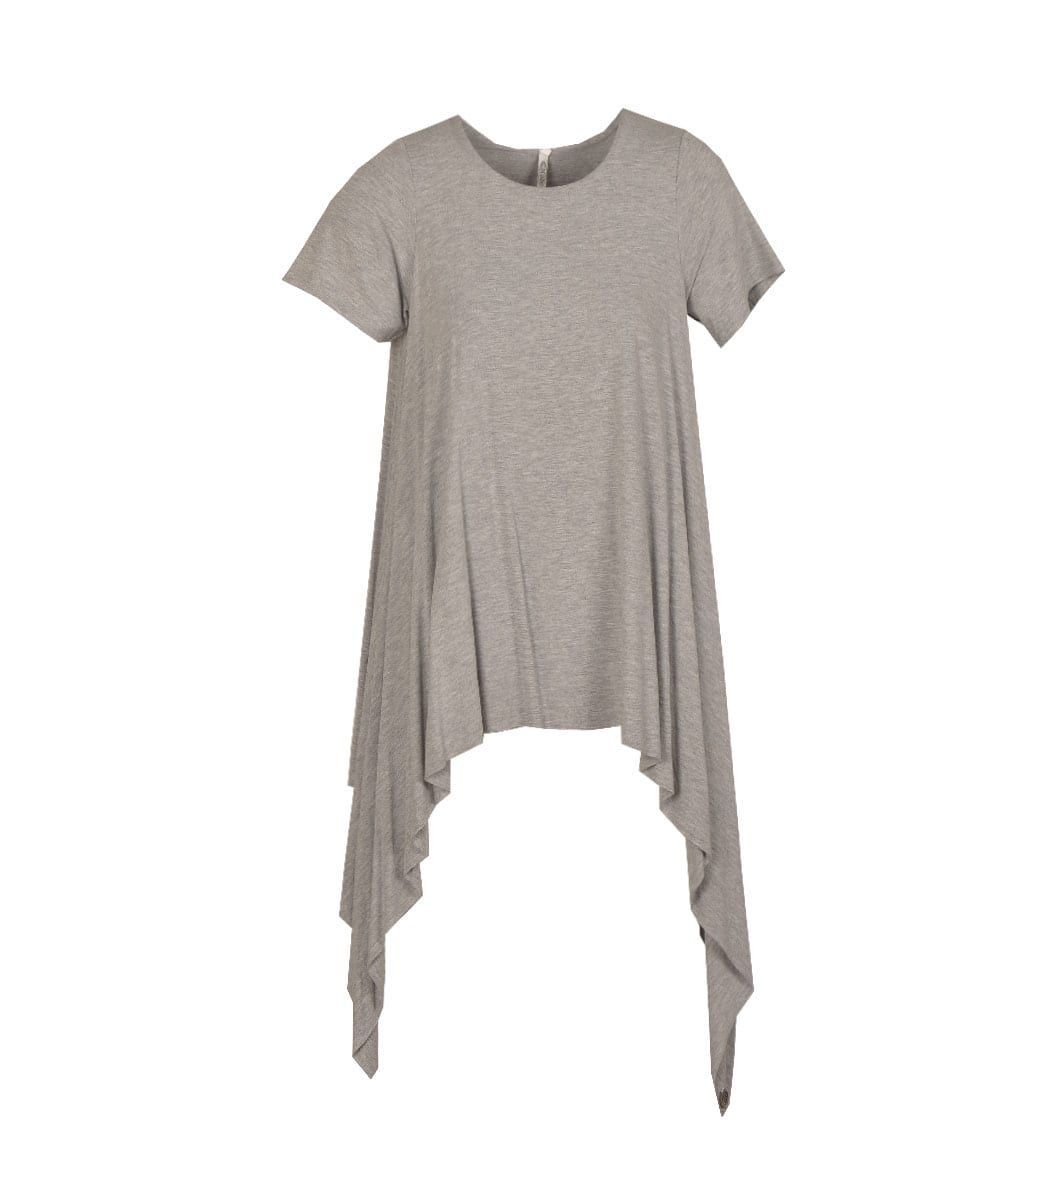 Cocoon pointed t-shirt